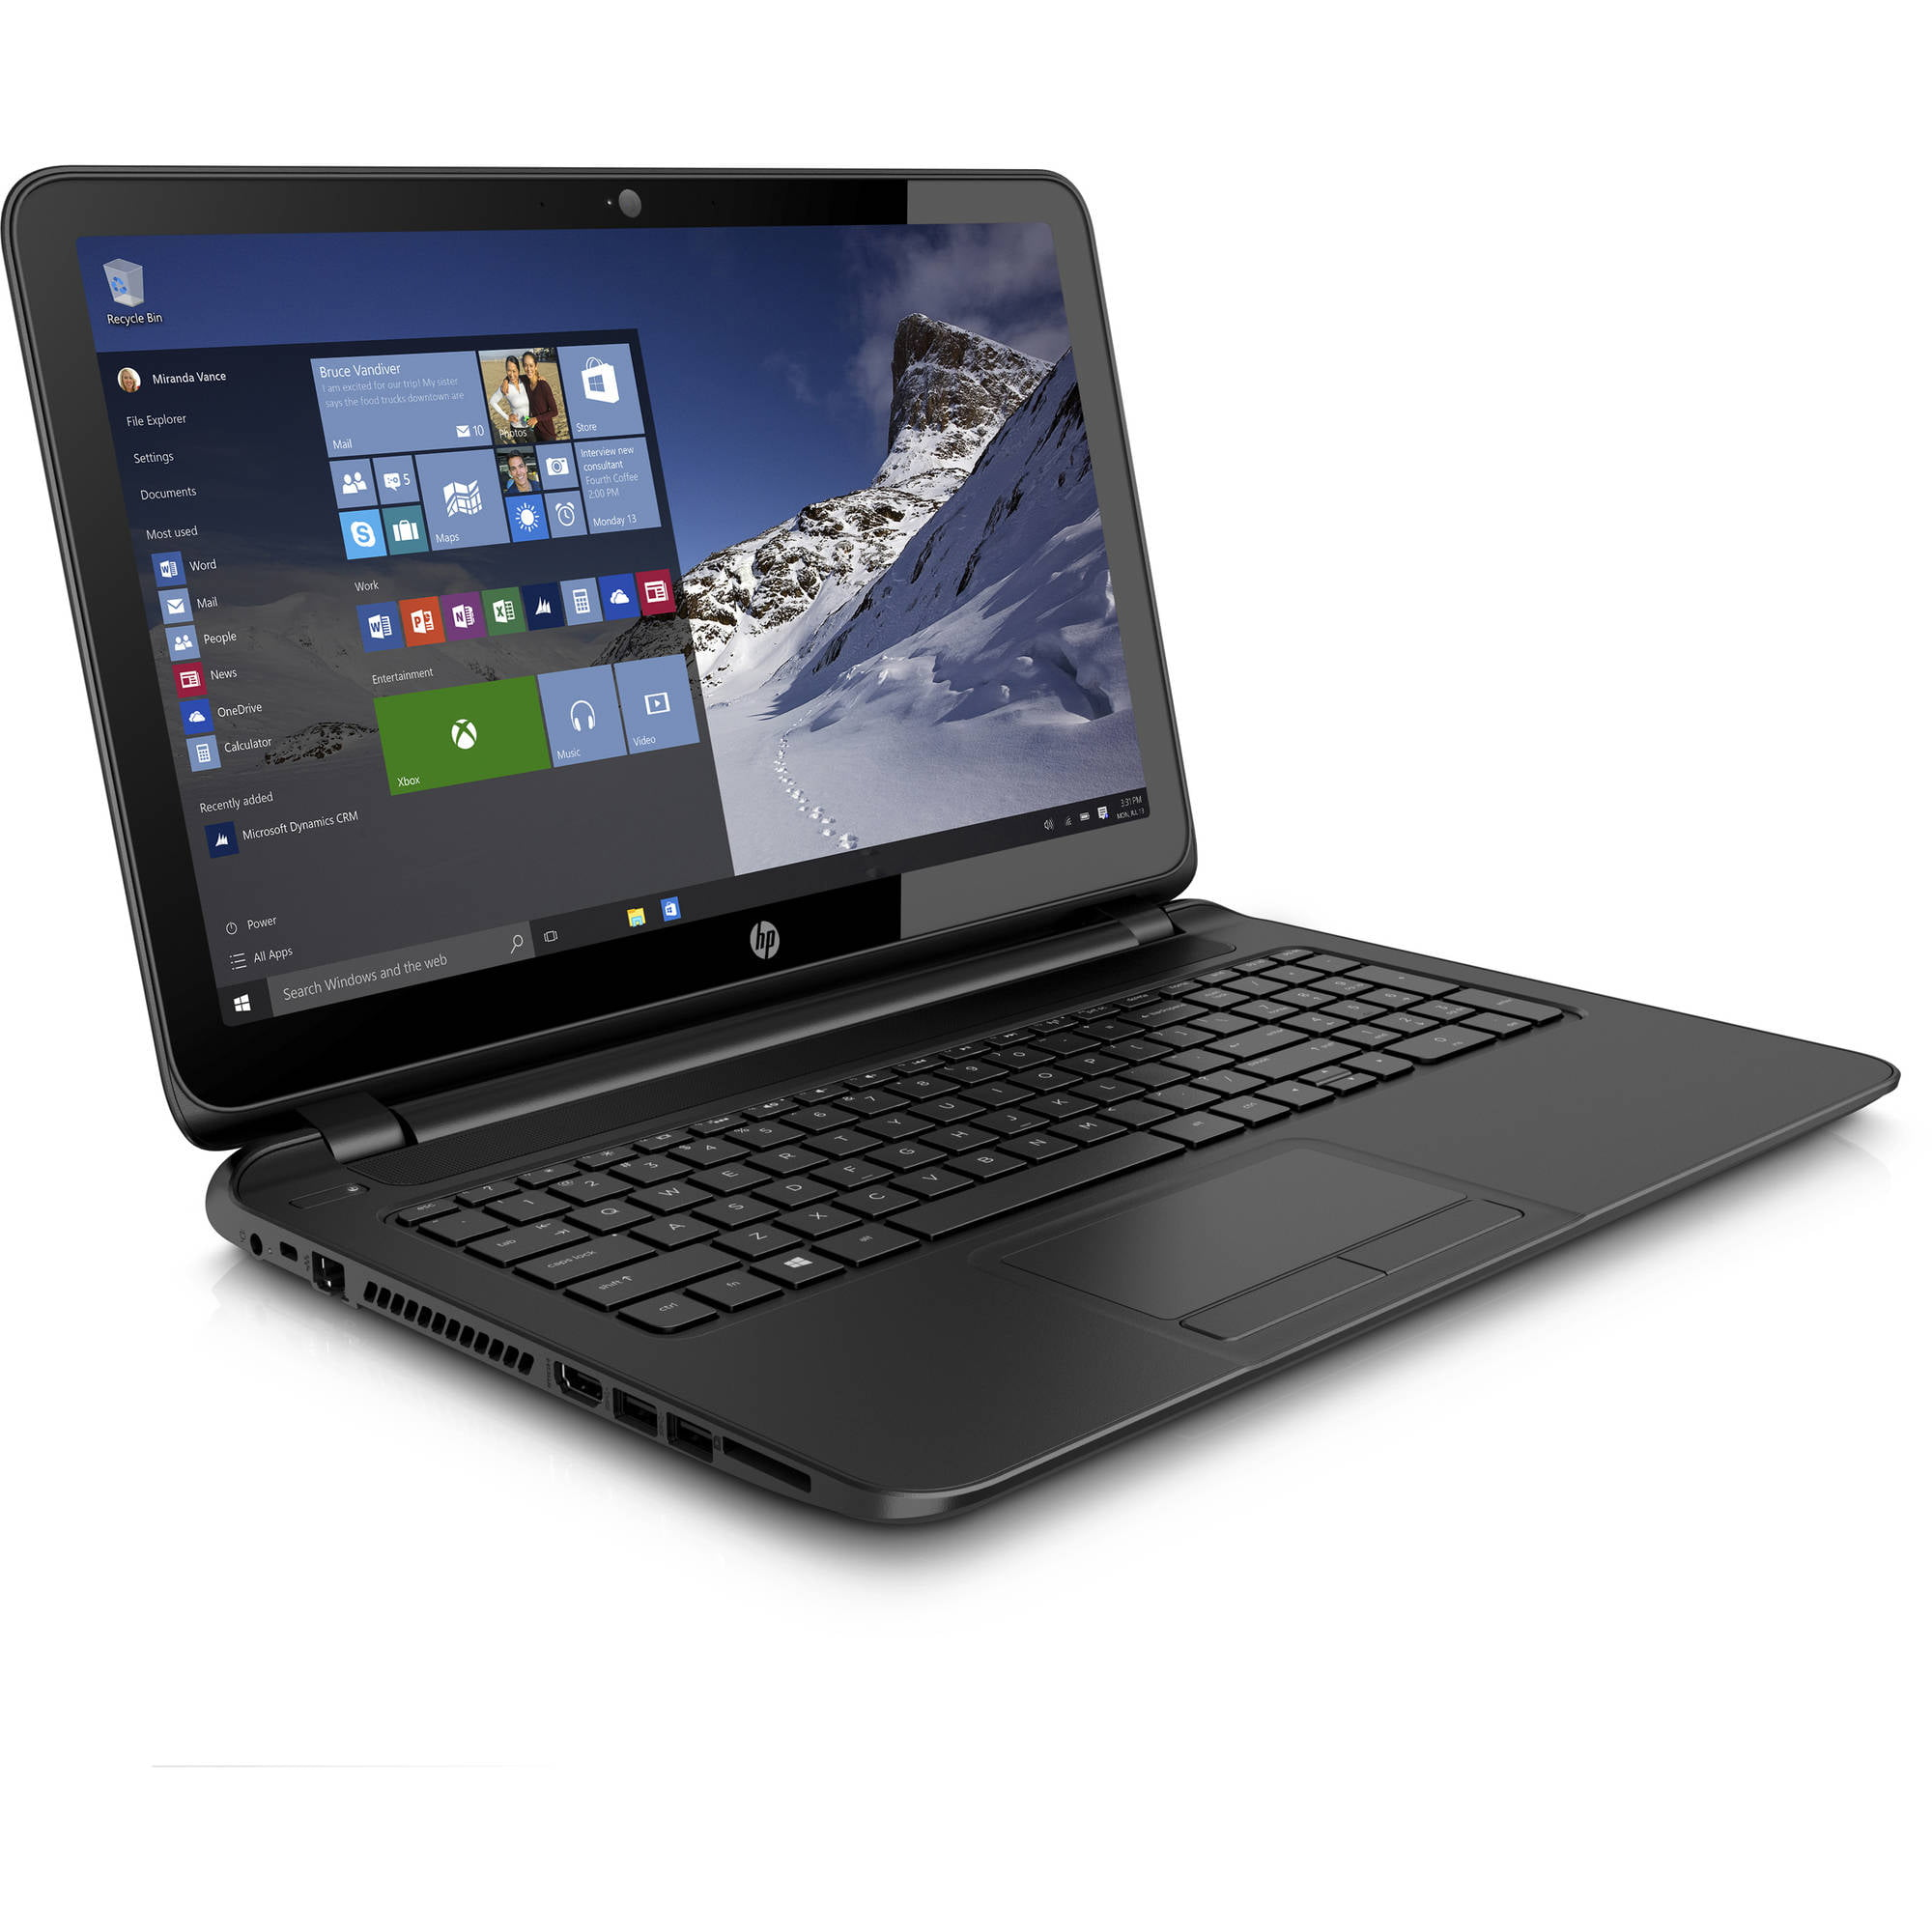 HP G60-119OM Notebook LG ODD Drivers (2019)